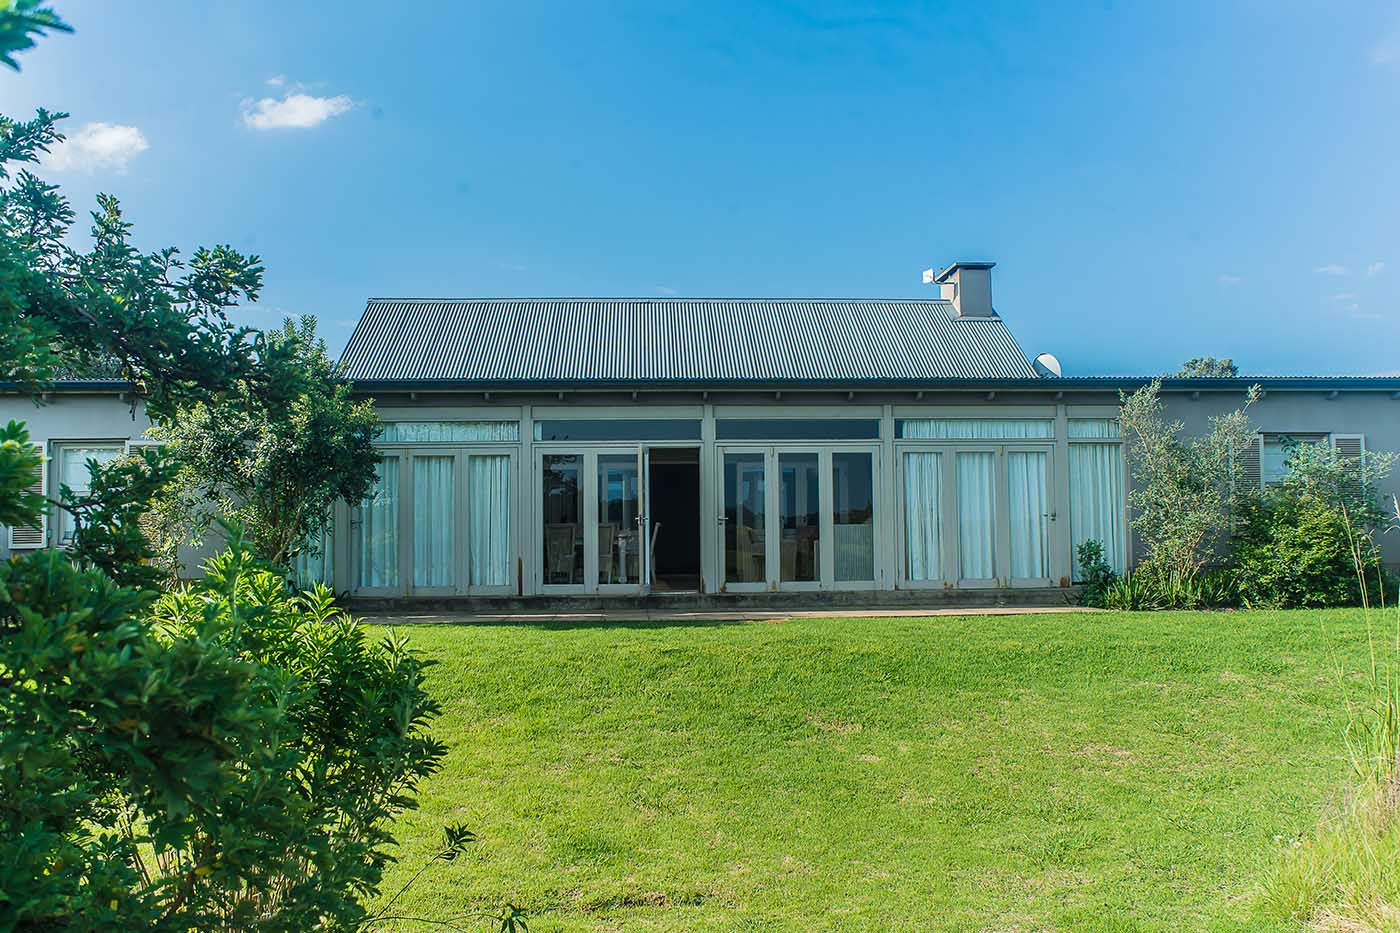 old-tom-morris-cottage-gallery-accommodation-gowrie-golf-course-functions-weddings-housing-development-midlands-kzn